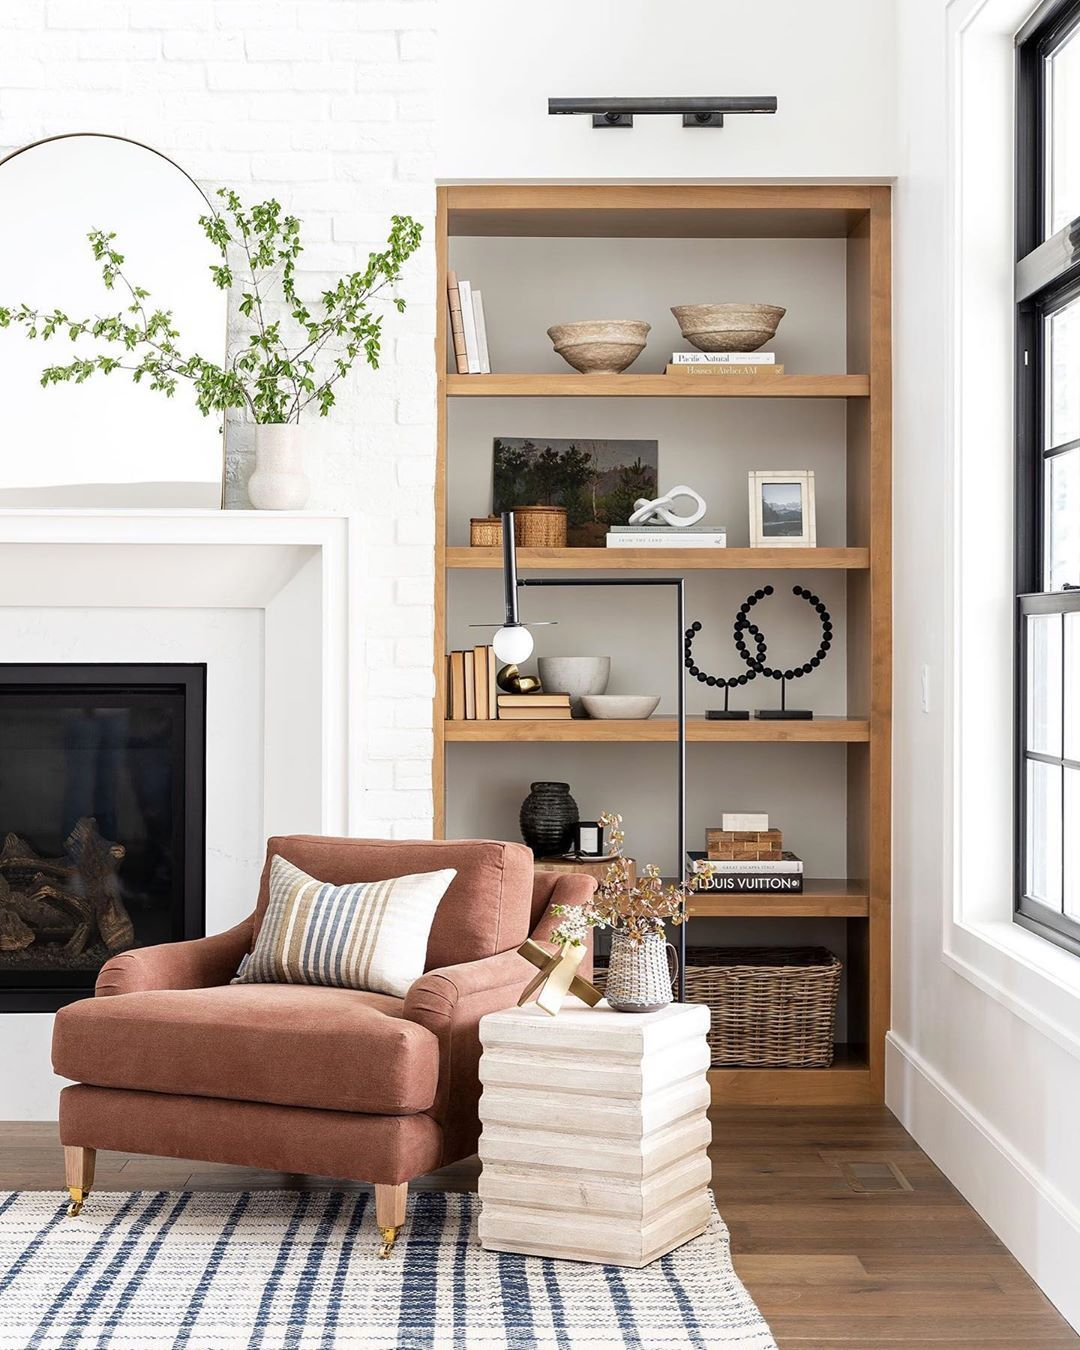 Pin on — LIVING ROOM —